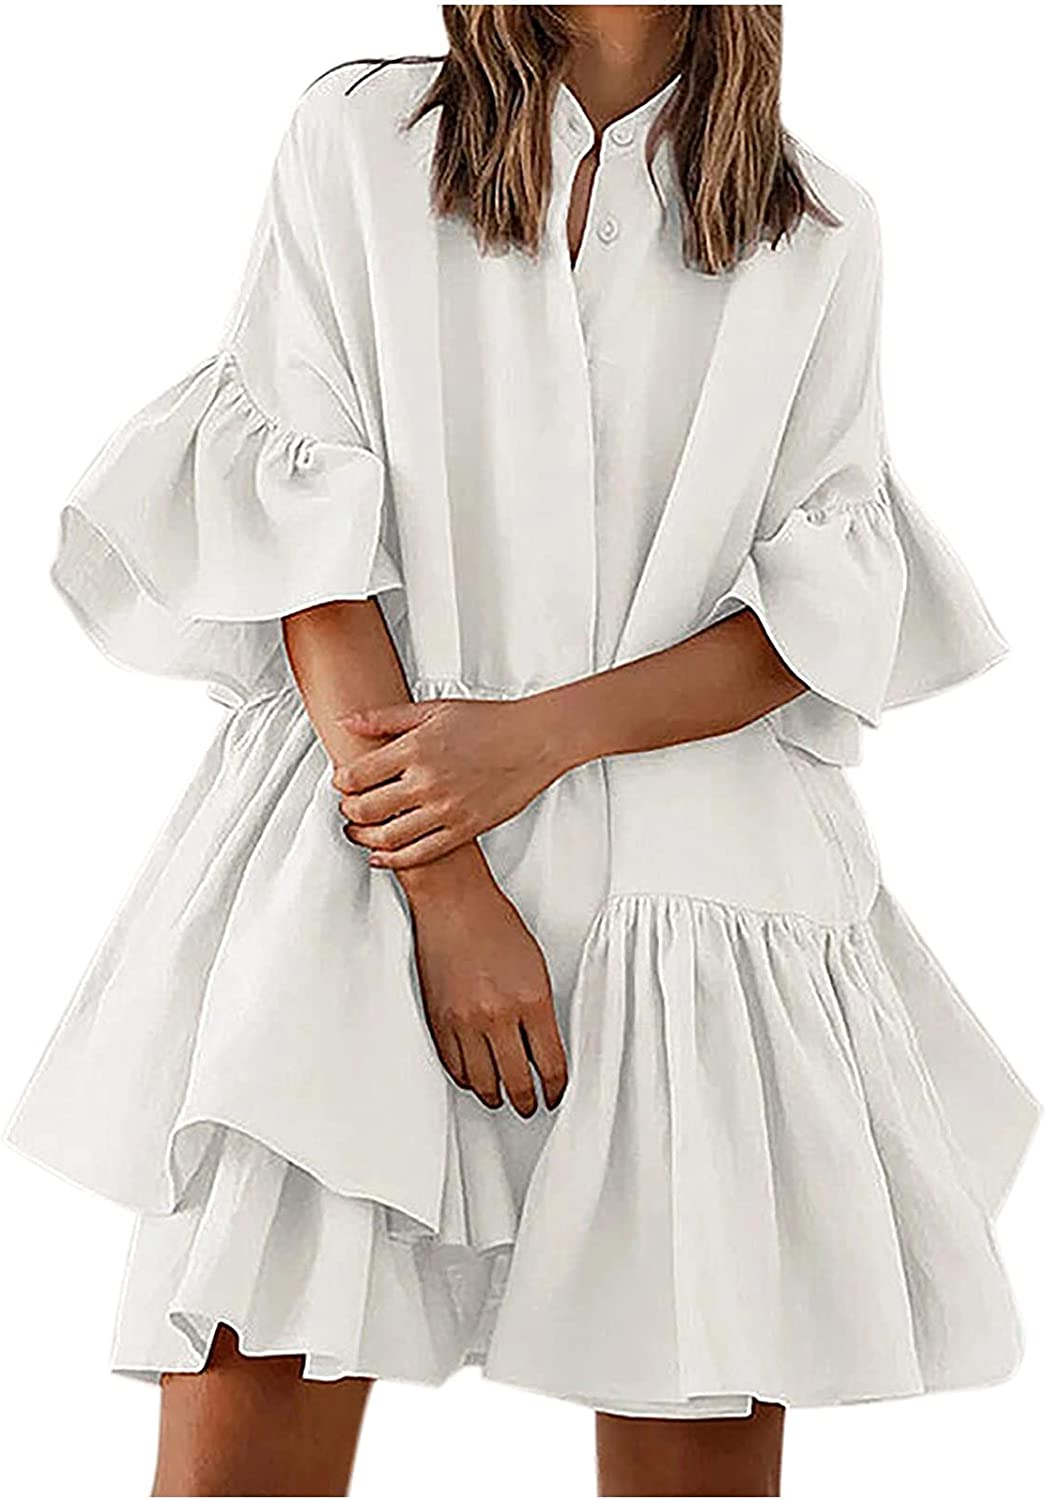 Sun Dresses Women Summer Women's Summer Loose Solid Color High-End Flared Sleeve Pleated Dress Womens Dresses